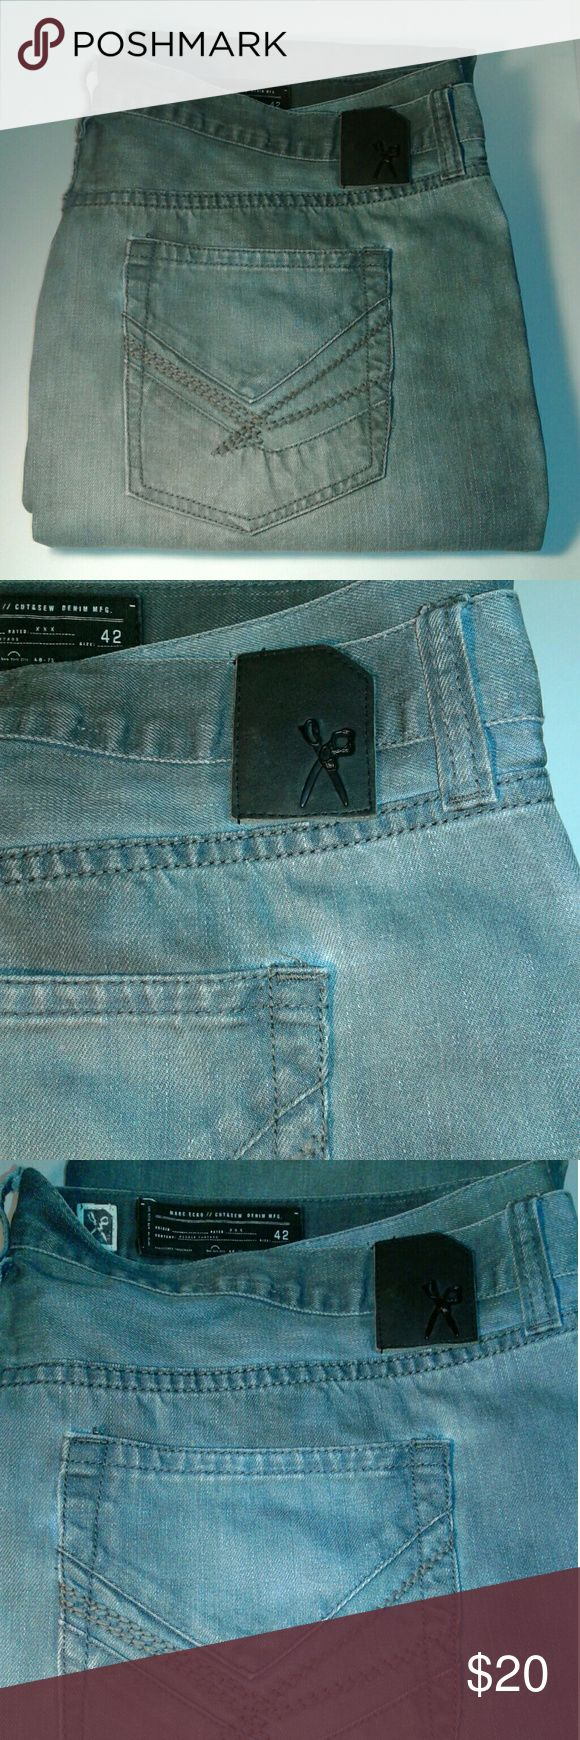 "MARCH ECKO/DEADLY THREADS MEN'S JEANS Size 42 In good condition  Diesel Look distressed jeans Jeans have a black like coloring,  no rips or tears... tiny amount of fraying at the hem... Please refer to pictures before purchasing,  the jeans are very nice,  but can be mistaken for being ""Dirty"" .... MARC ECHO Jeans Straight"